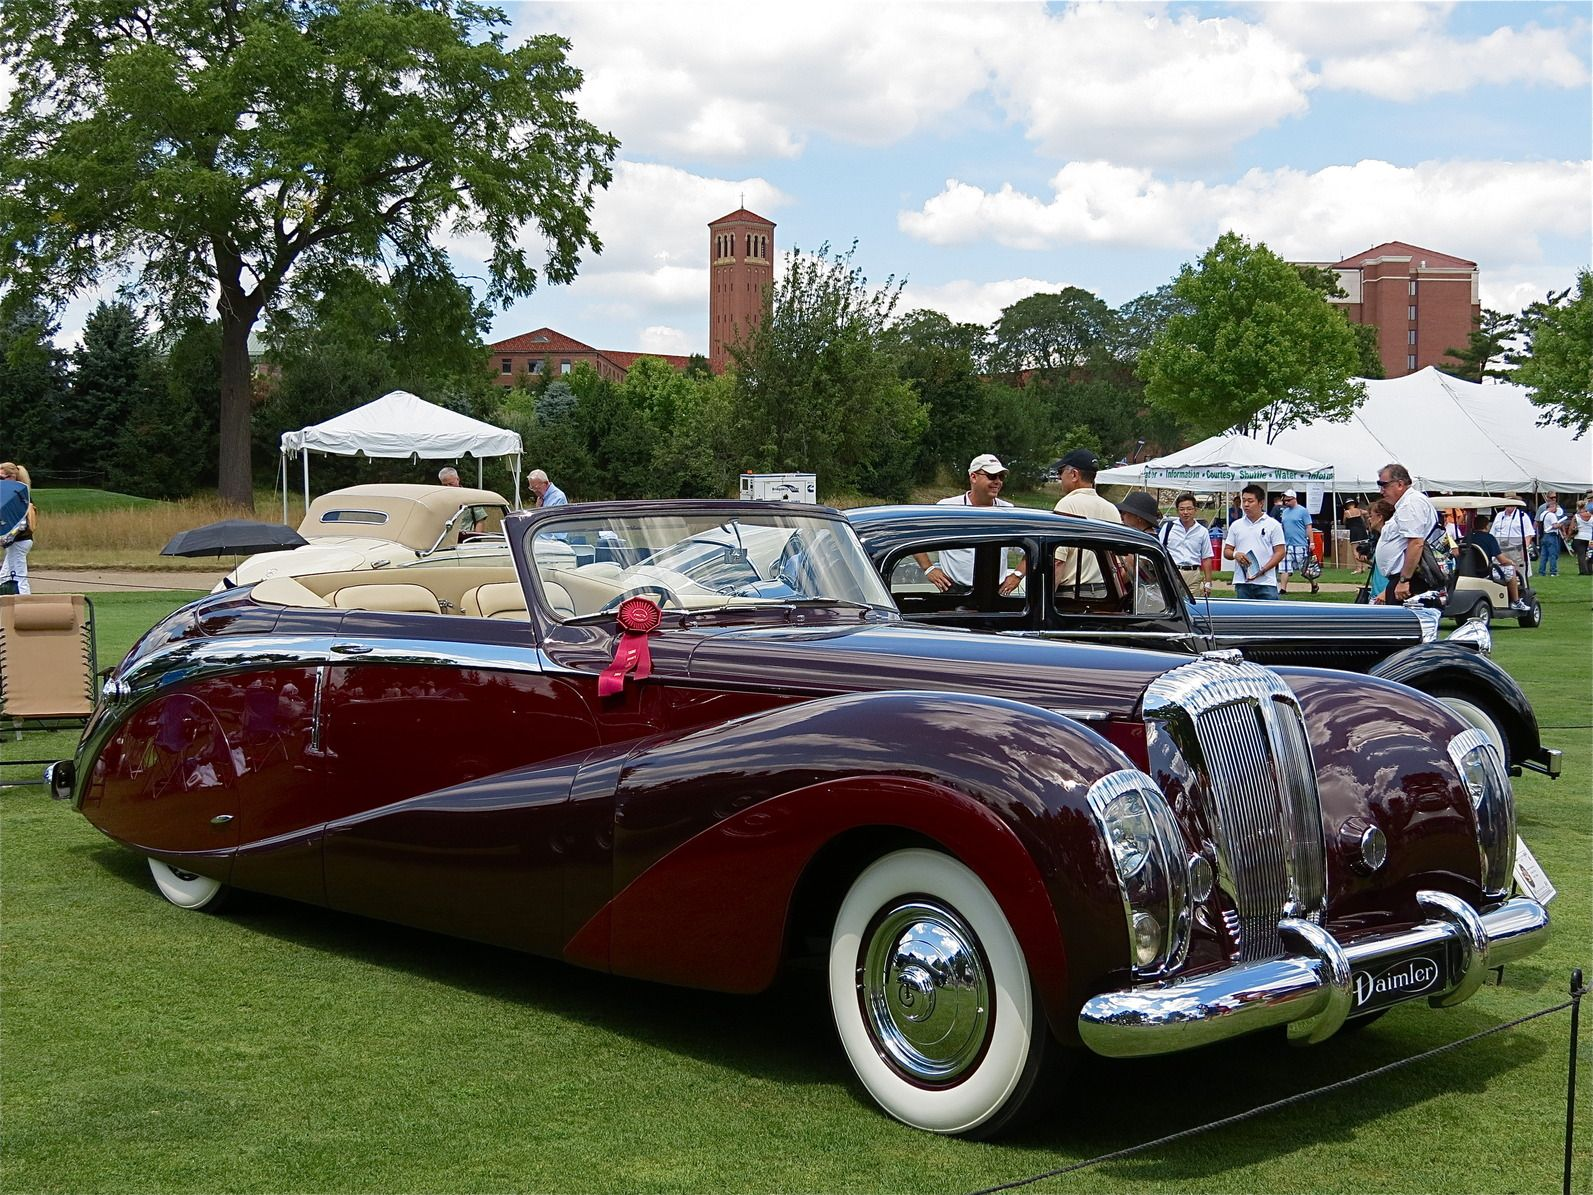 Concours d' Elegance of America: 1948 Daimler DE 36 Drophead Coupe by Hooper